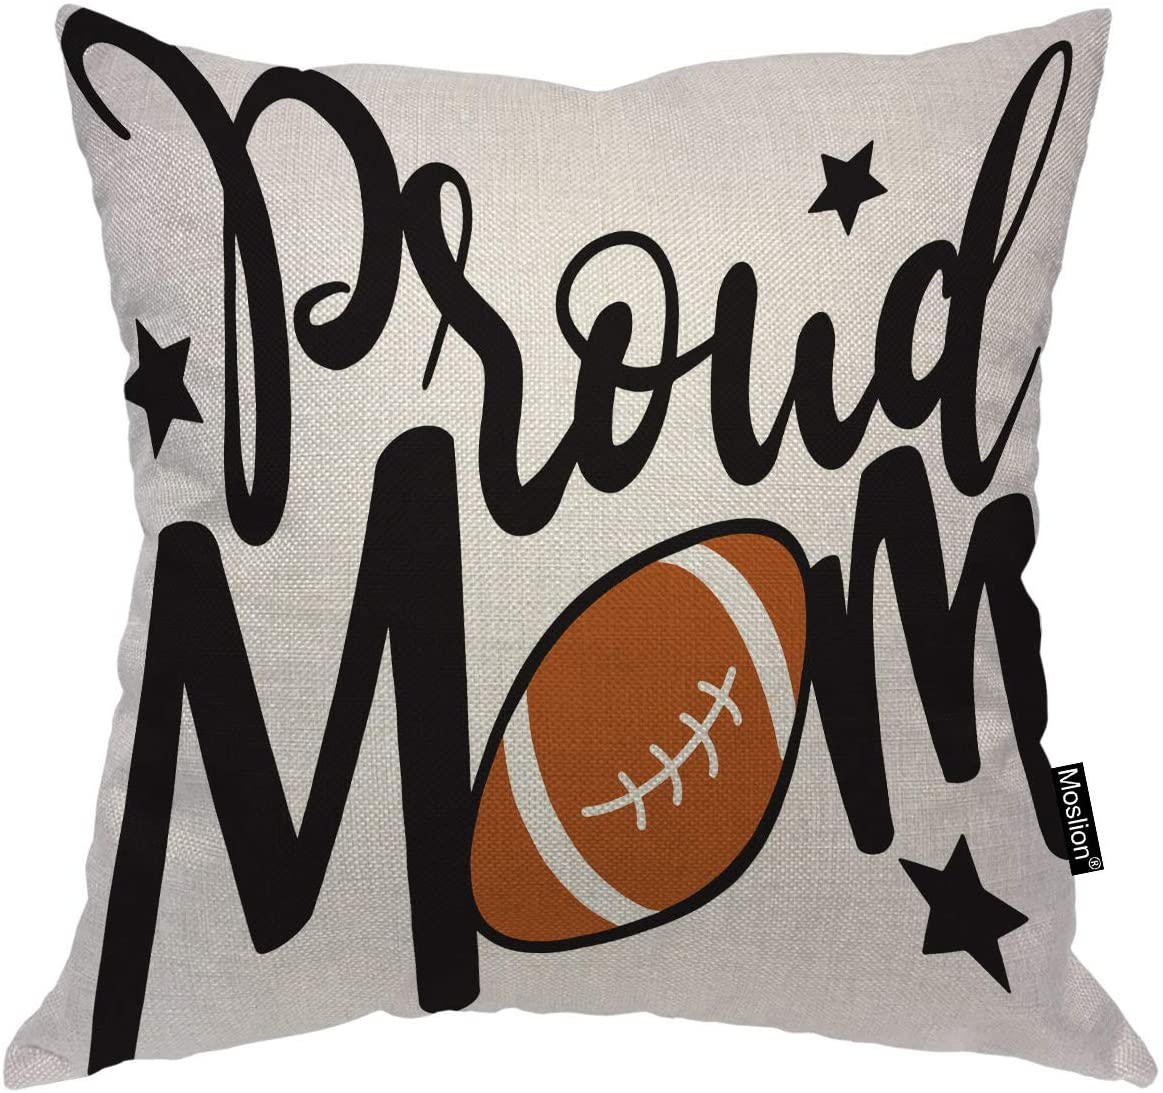 Moslion Proud Mom Throw Pillow Cover with American Football Rugby Stars Positive Lettering Square Pillow Case Cushion Cover for Home Car Decorative Cotton Linen 18x18 Inch